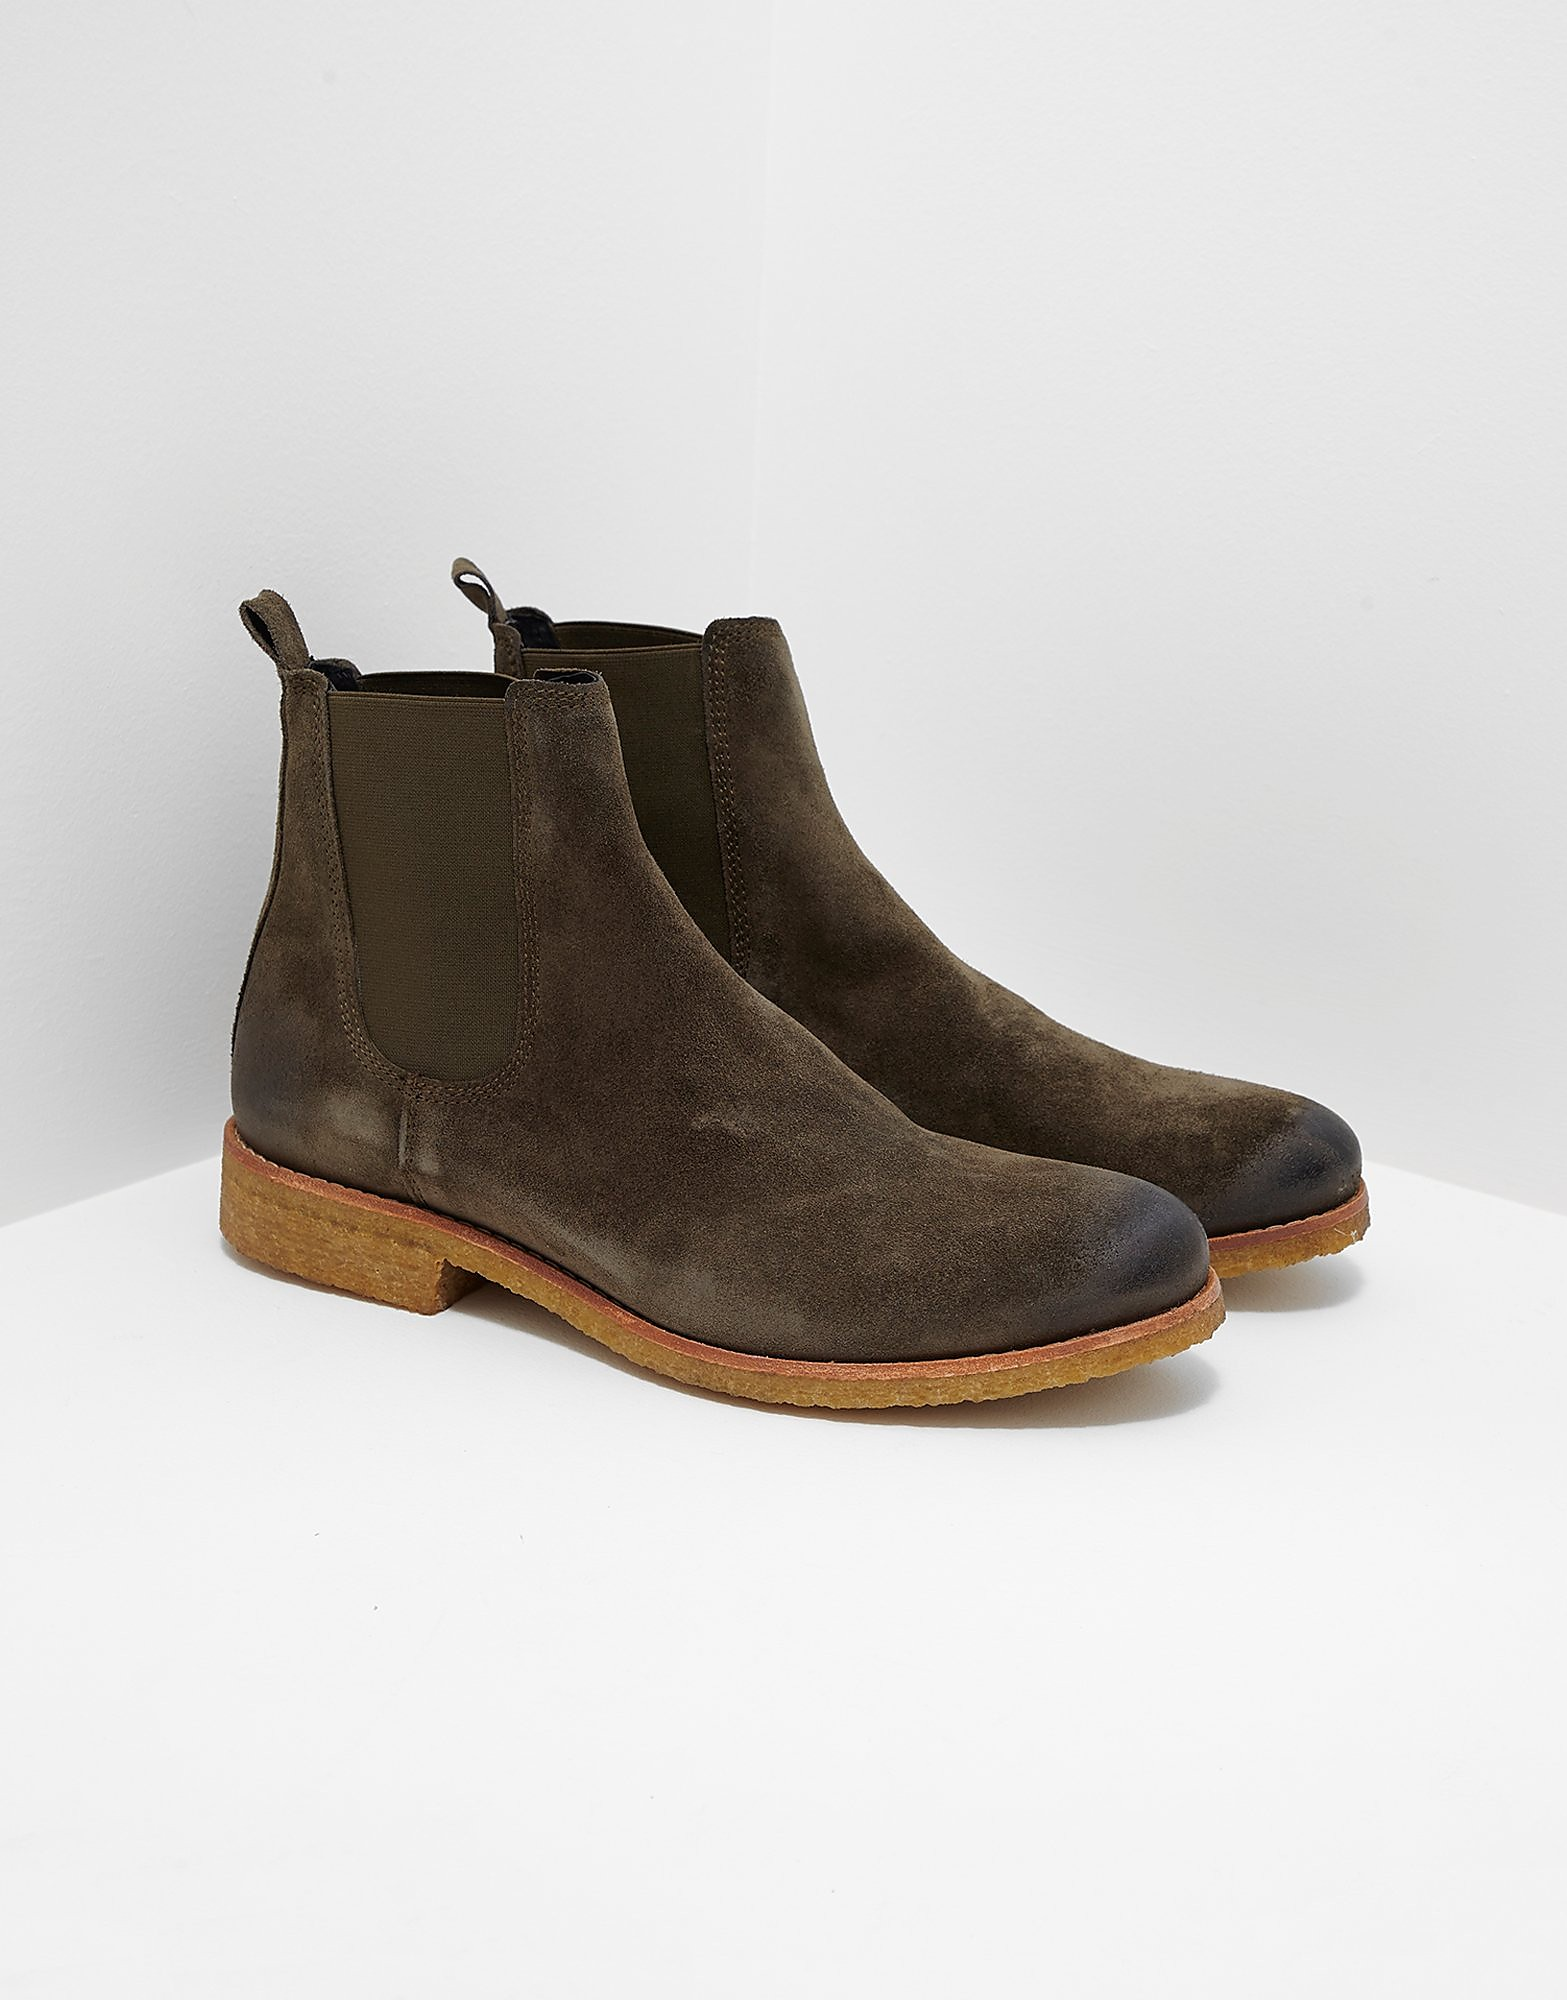 WODEN Charles Boot